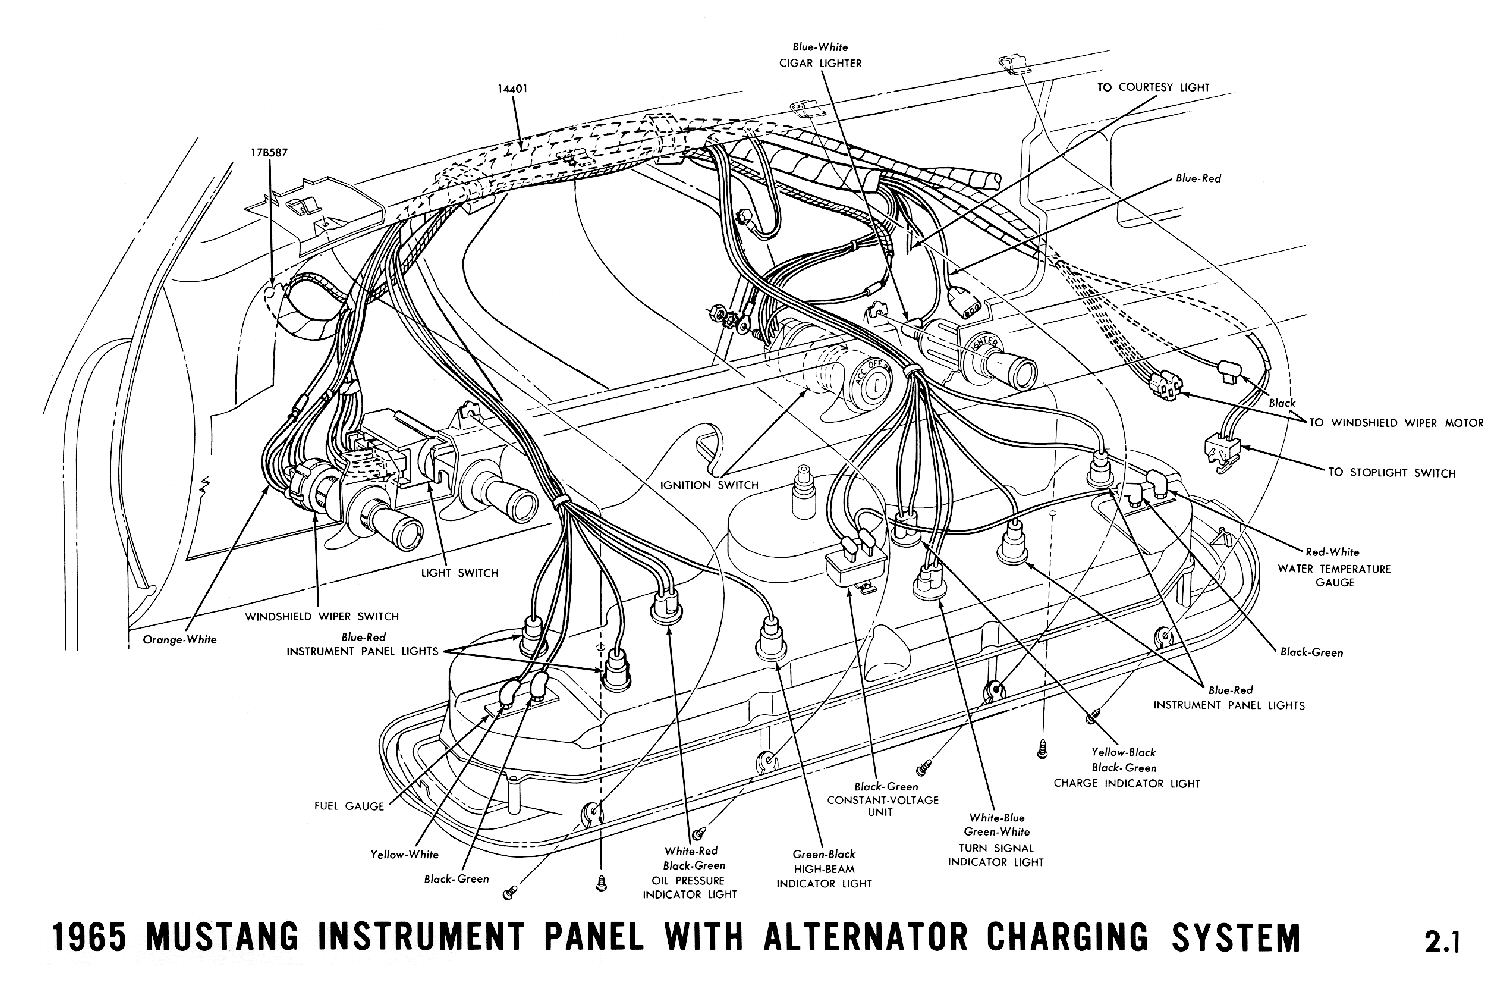 1965a 1965 mustang wiring diagrams average joe restoration 1965 ford mustang wiring diagrams at panicattacktreatment.co